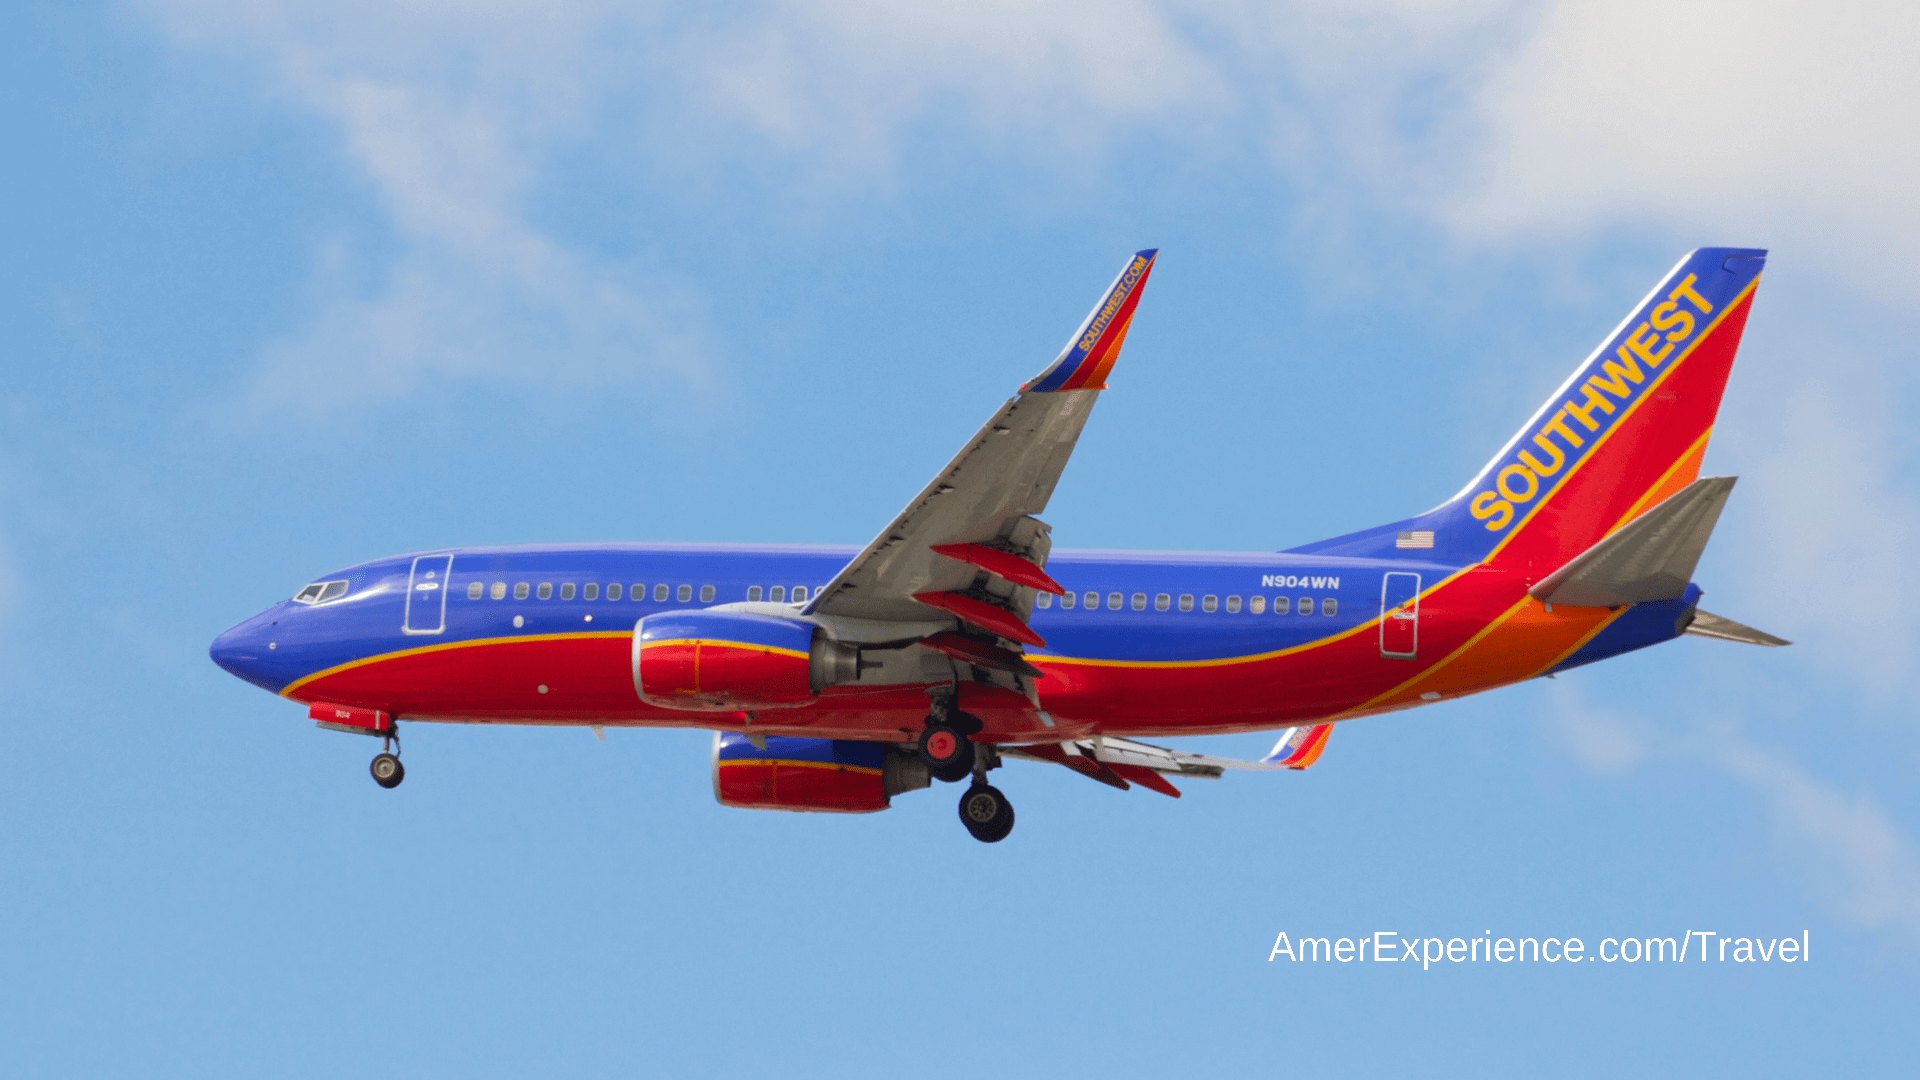 Forget about that toast at 35,000 feet: Southwest Airlines isn't bringing back inflight booze until at least 2022